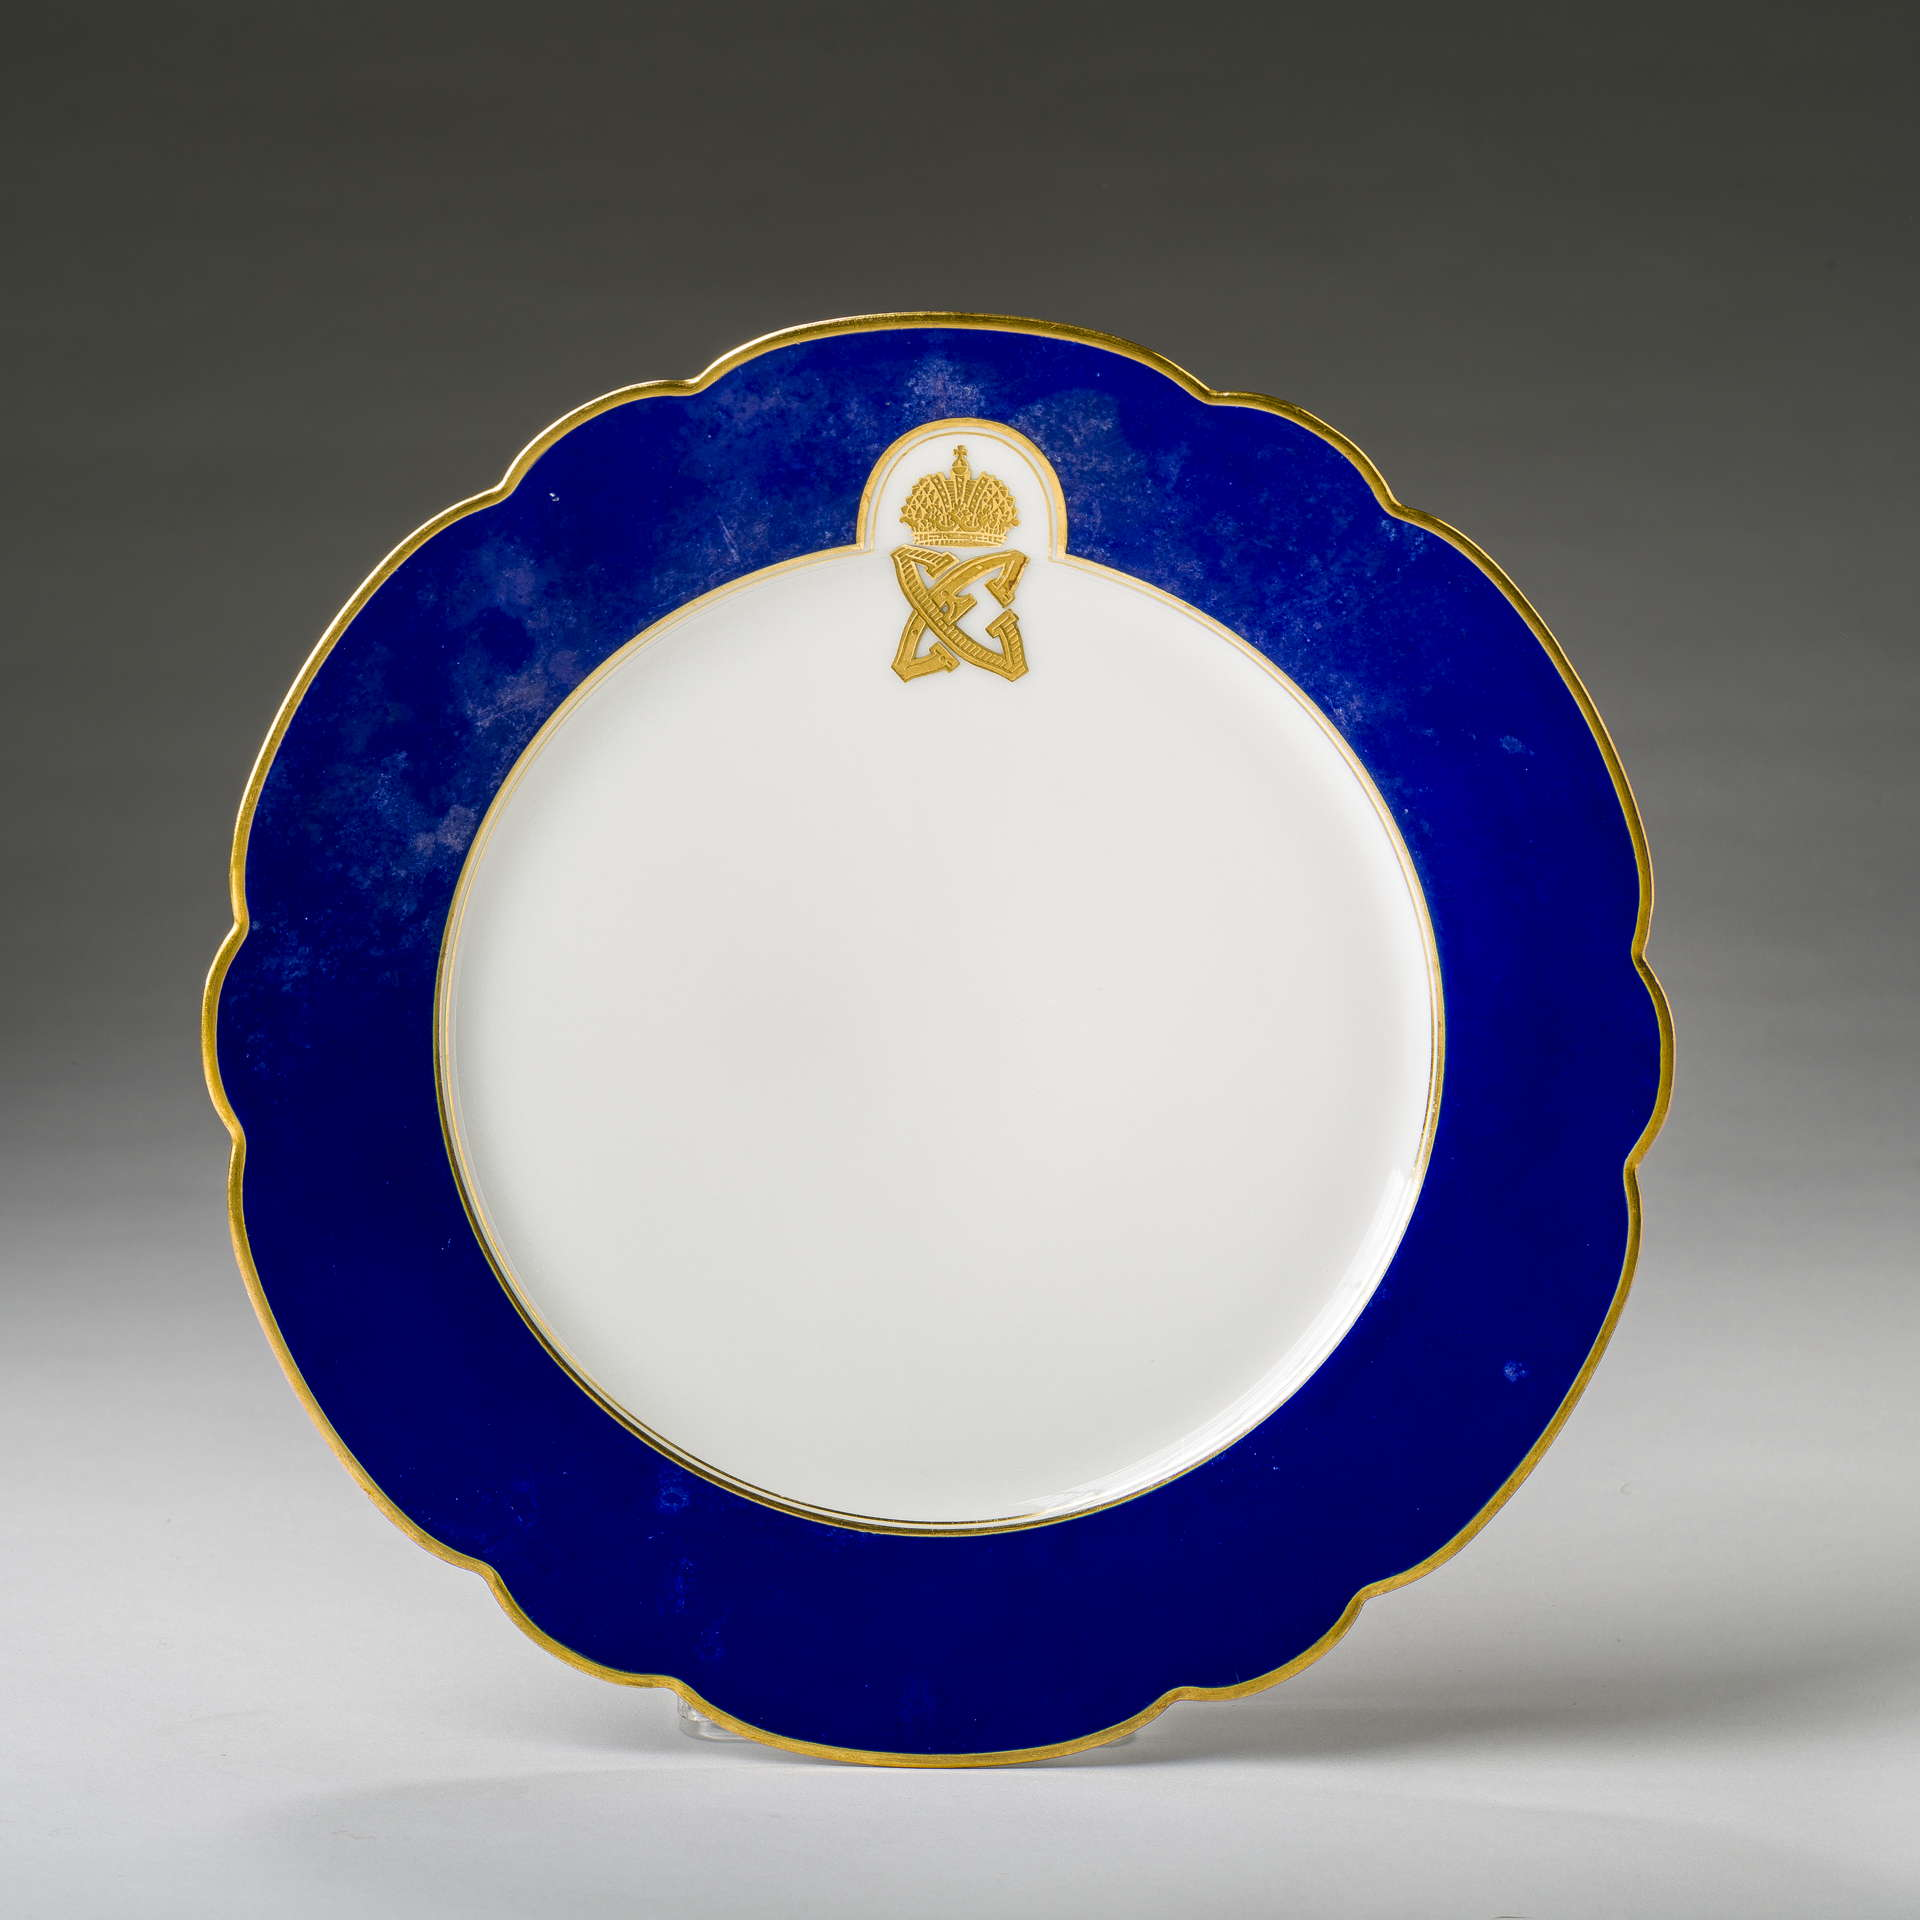 9b7a37dc RUSSIAN PORCELAIN DESSERT PLATE FROM THE BLUE SERVICE FOR GRAND DUKE SERGEI  ALEXANDROVICH AND GRAND DUCHESS ELIZABETH FEODOROVNA, LATE NINETEENTH ...